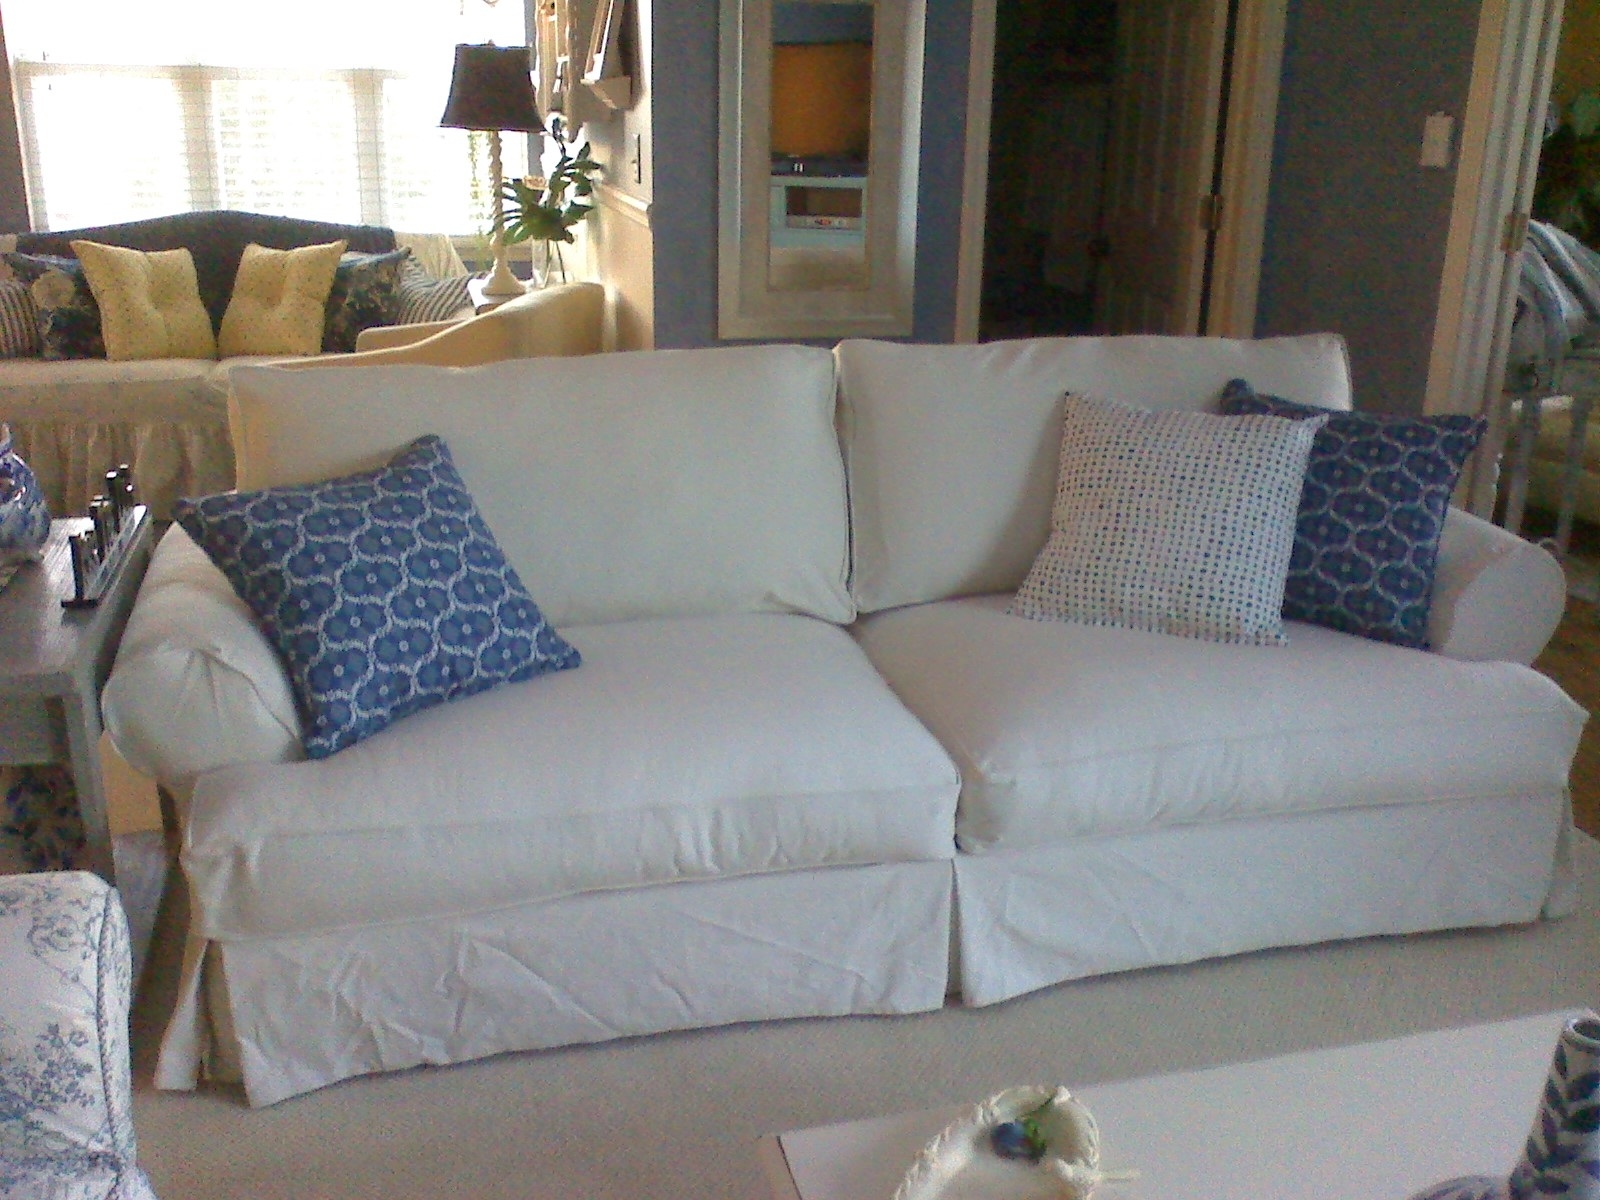 Sofas With Washable Covers With Regard To Well Known Slipcovers For Sofas Be Equipped L Couch Covers Be Equipped (View 11 of 15)